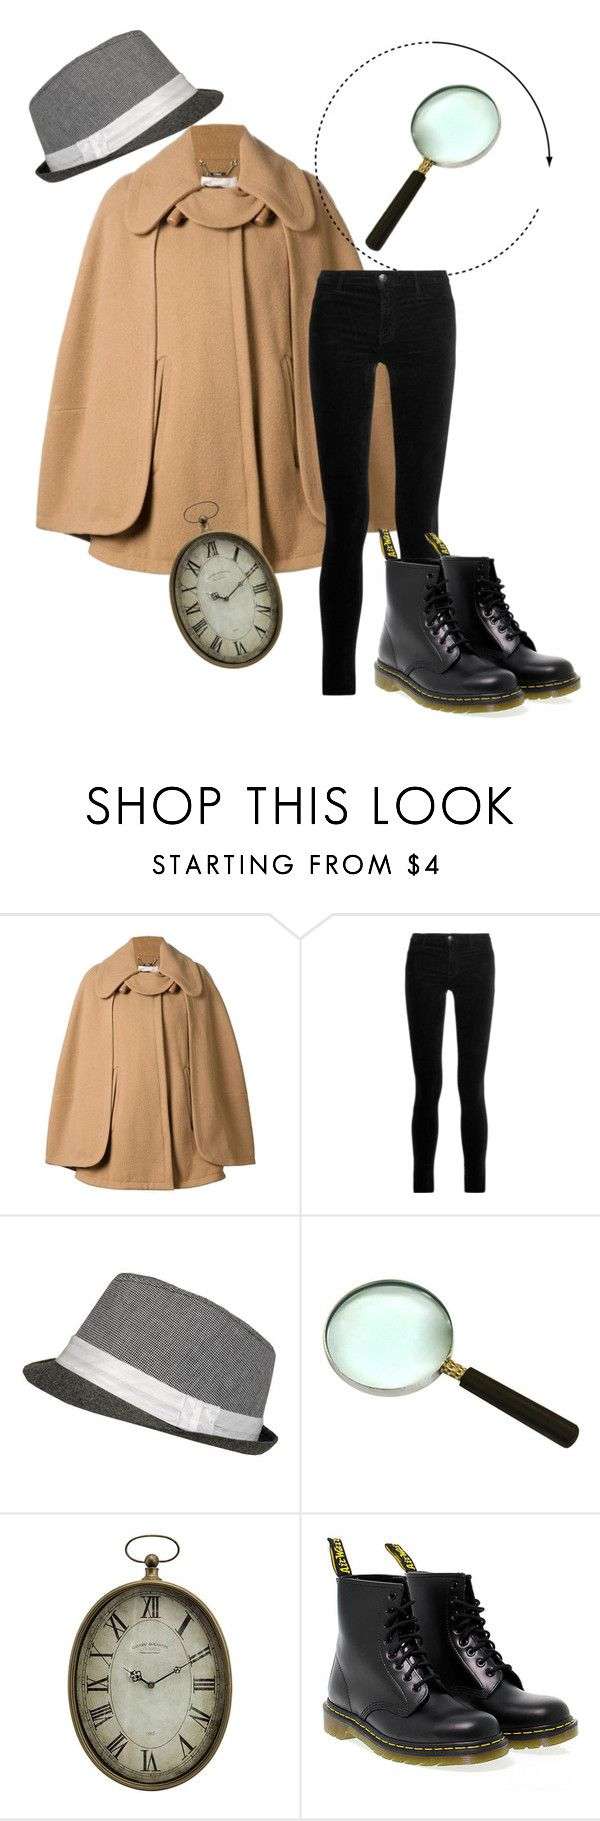 """""""DIY detective costume"""" by romanaroundski1 ❤ liked on Polyvore featuring Chloé, J Brand, Home Decorators Collection and Dr. Martens"""